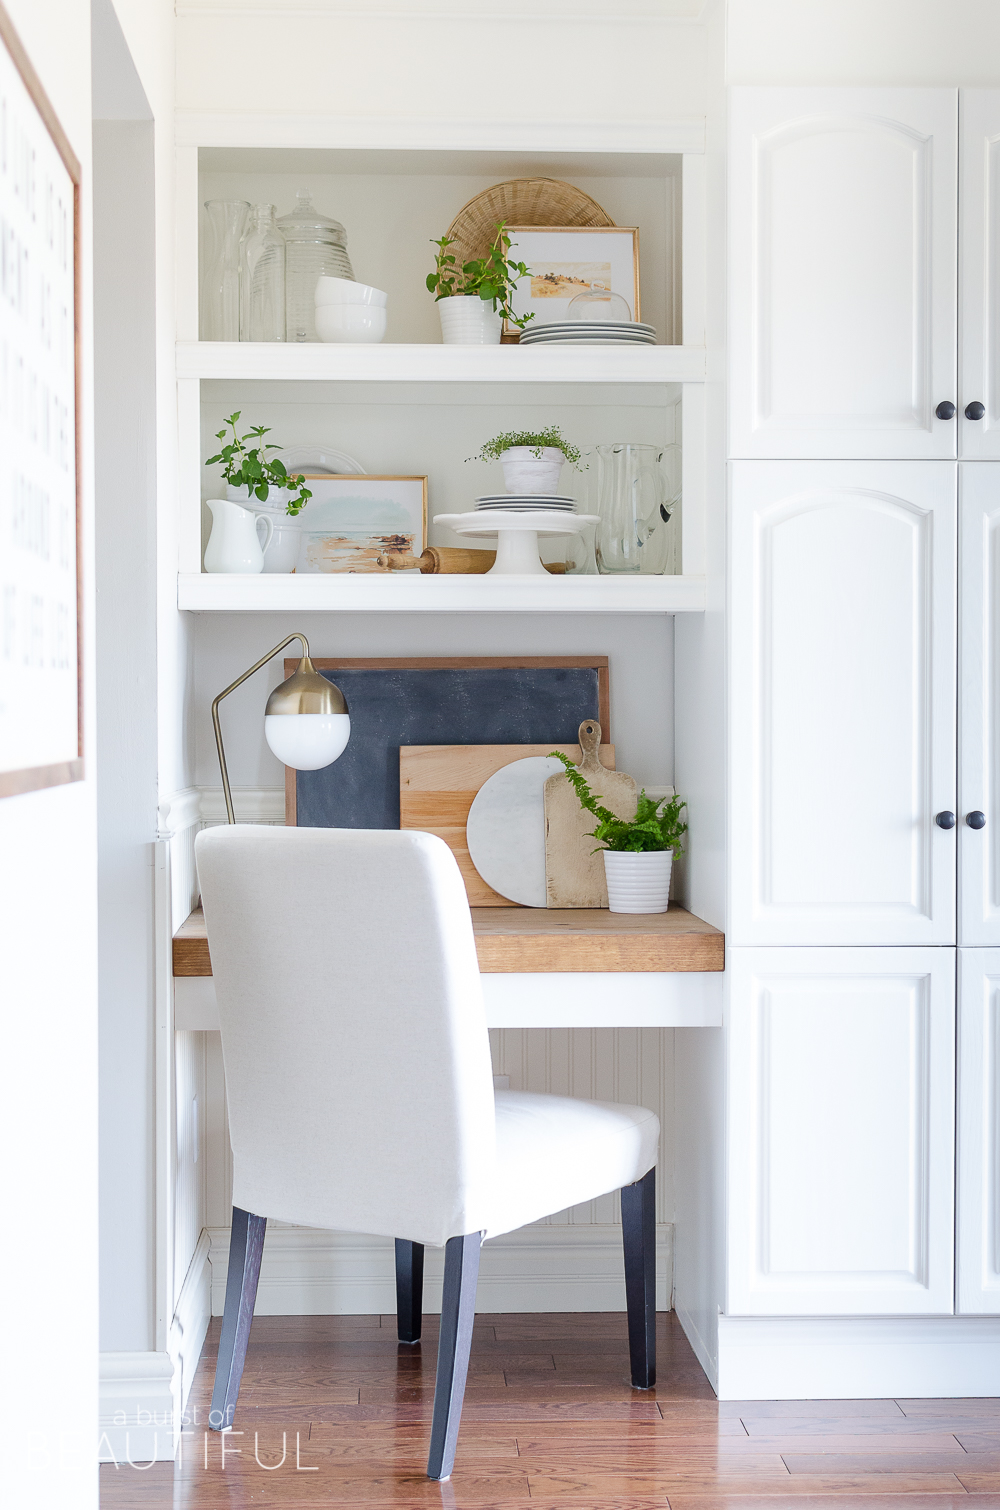 The Benefits Of Open Shelving In The Kitchen: How To Style Open Shelving In The Kitchen